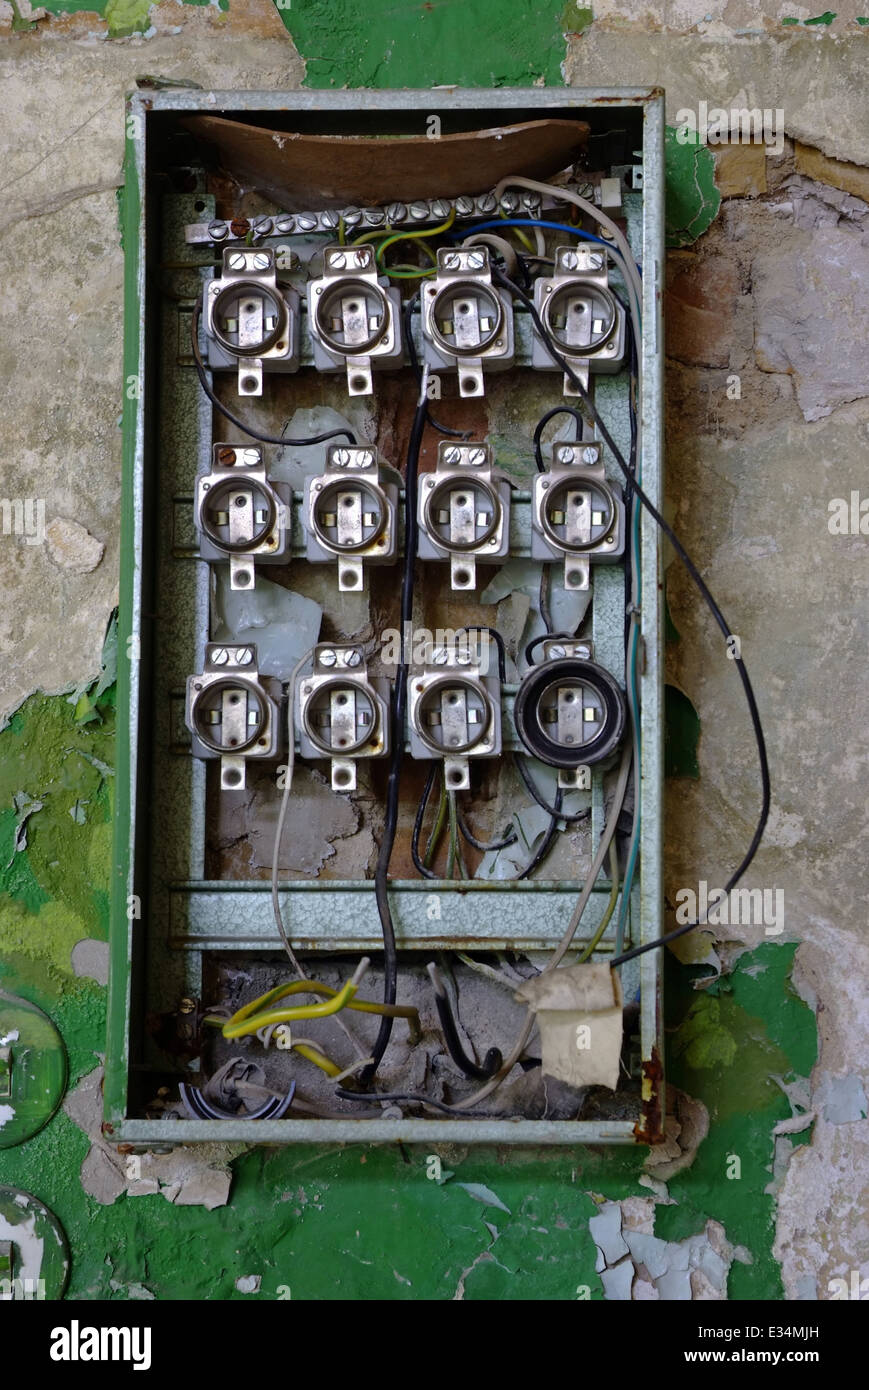 medium resolution of old fuse box in an abandoned house